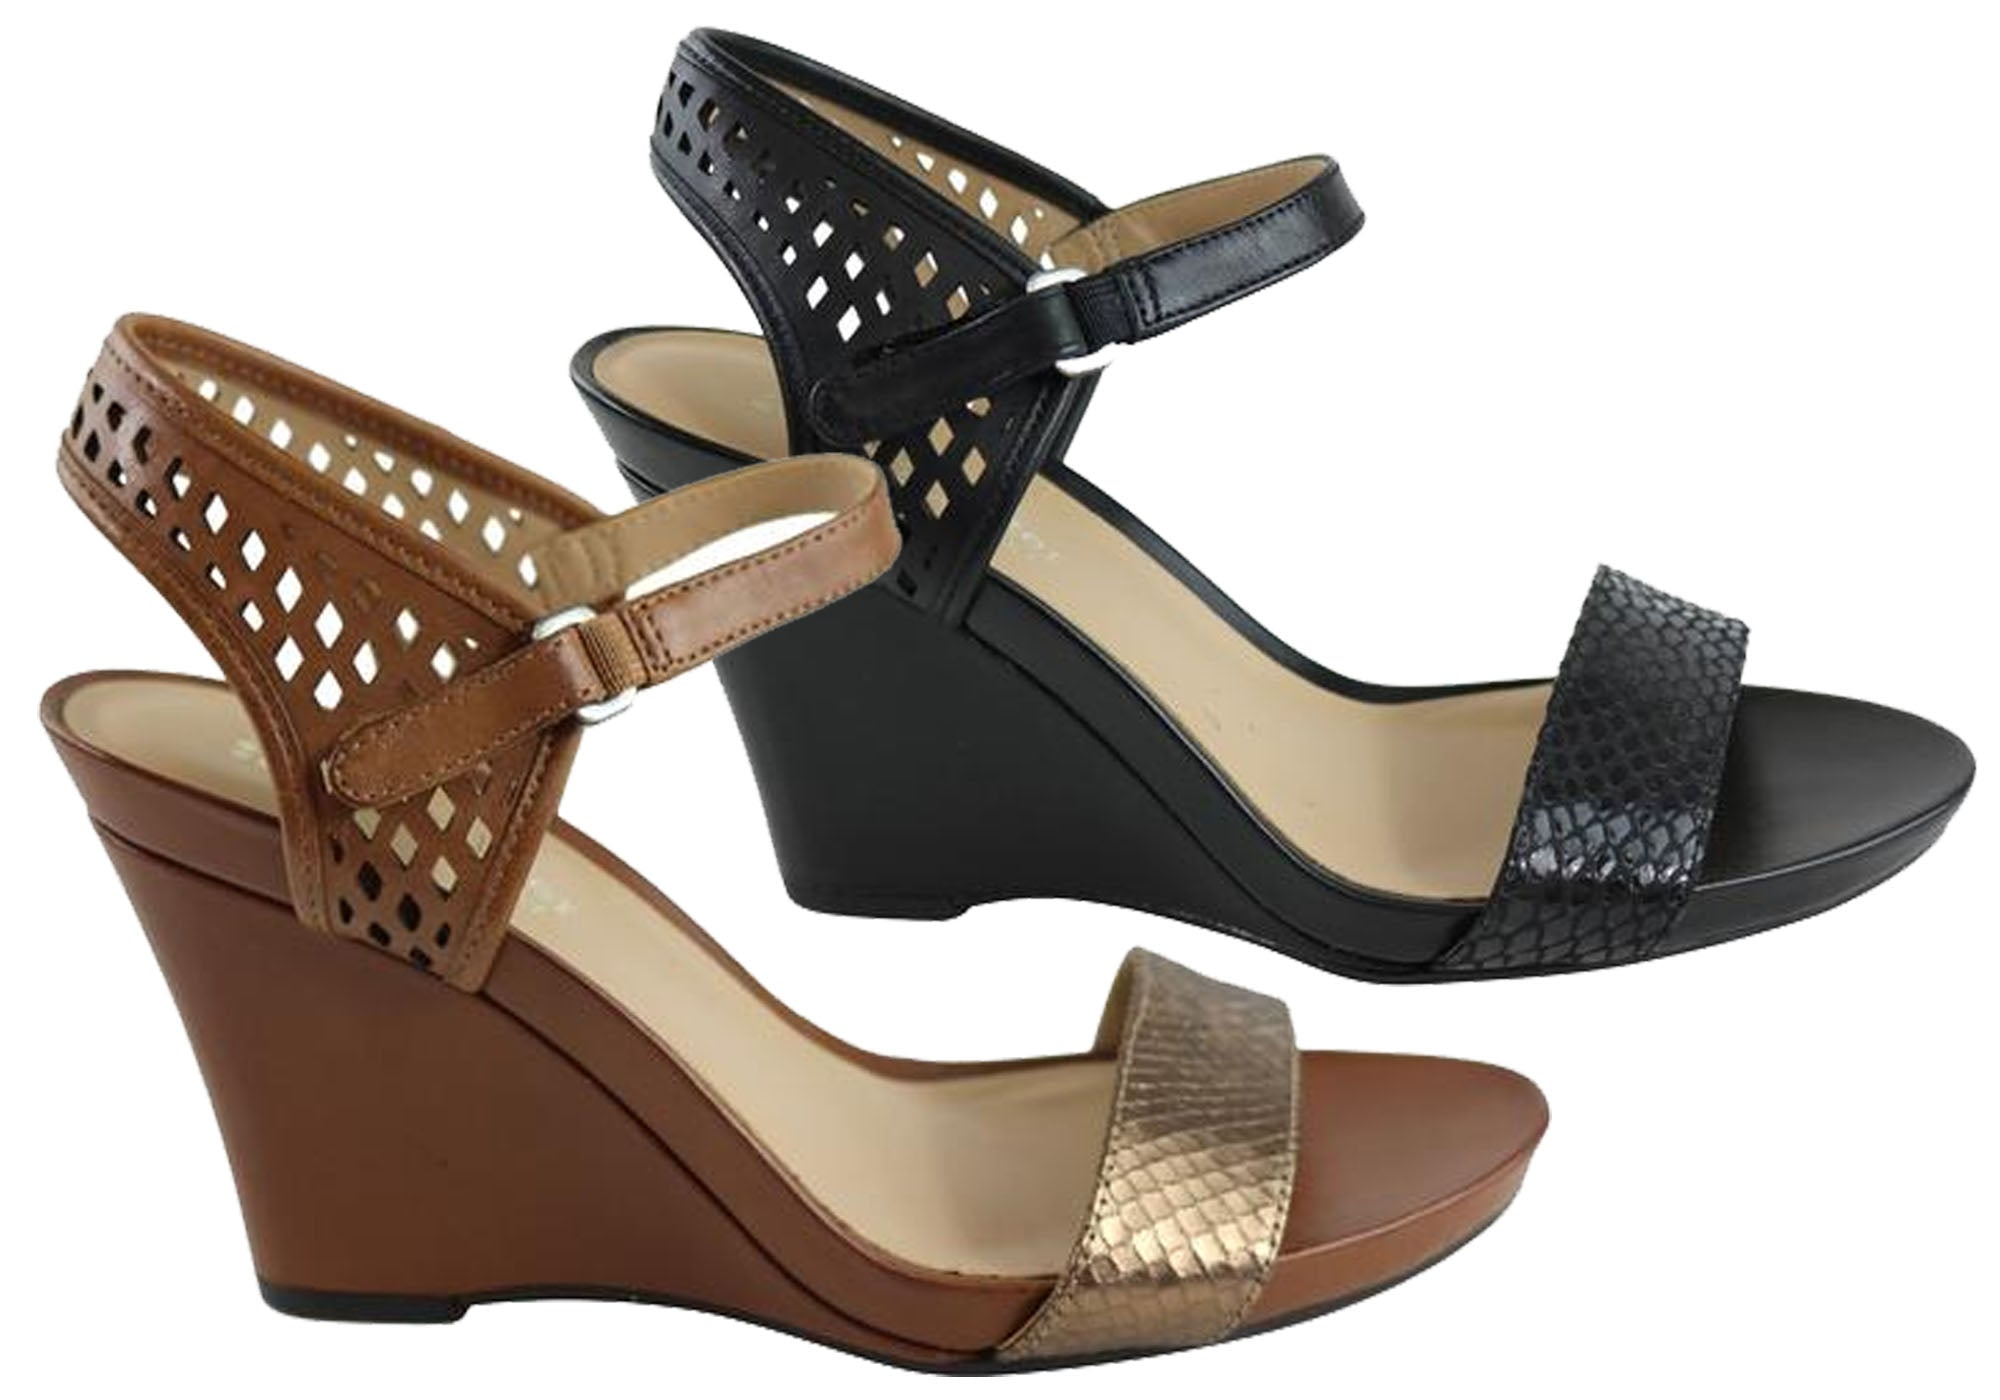 Details about Brand New Naturalizer Brealyn Womens Leather Comfort Wide Fit Wedge Sandals